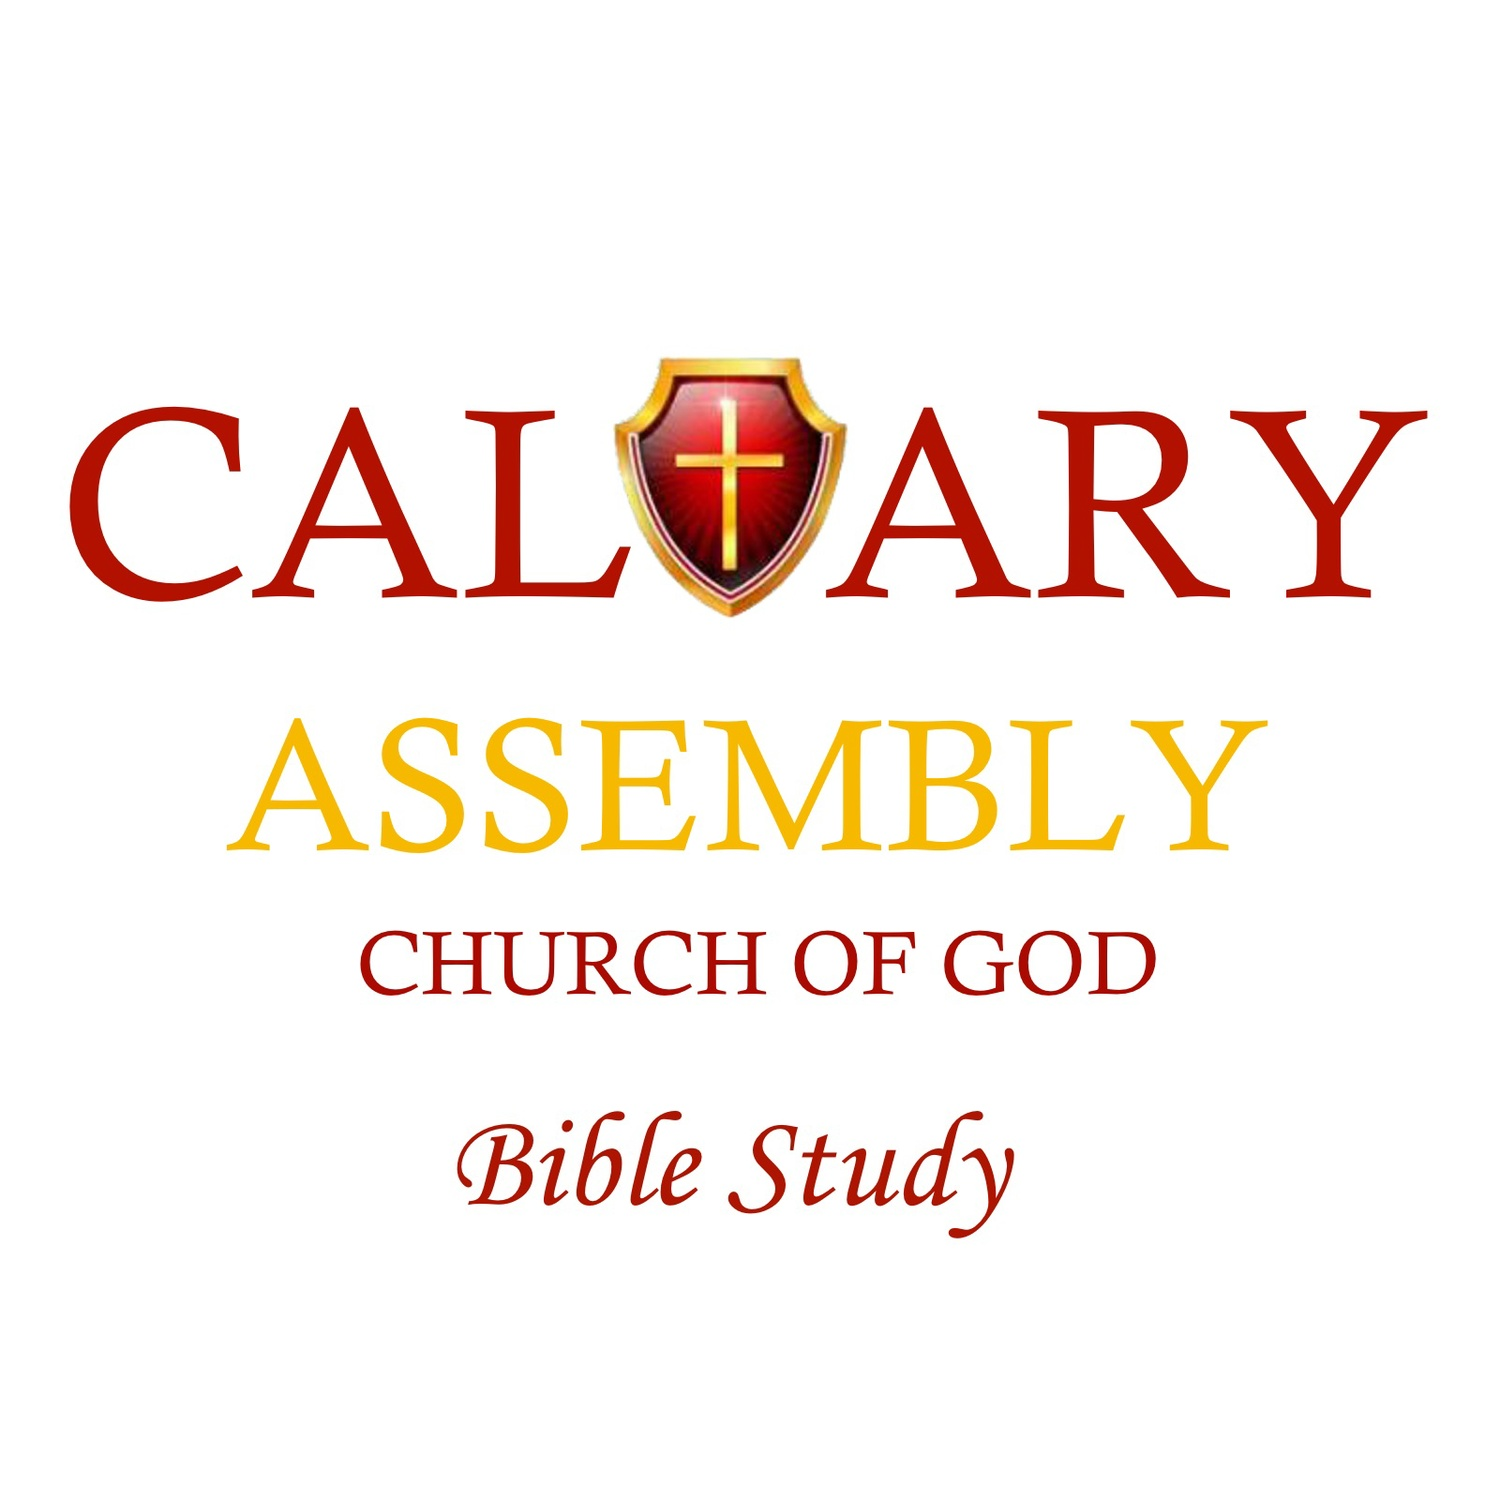 Bible Study - Calvary Assembly